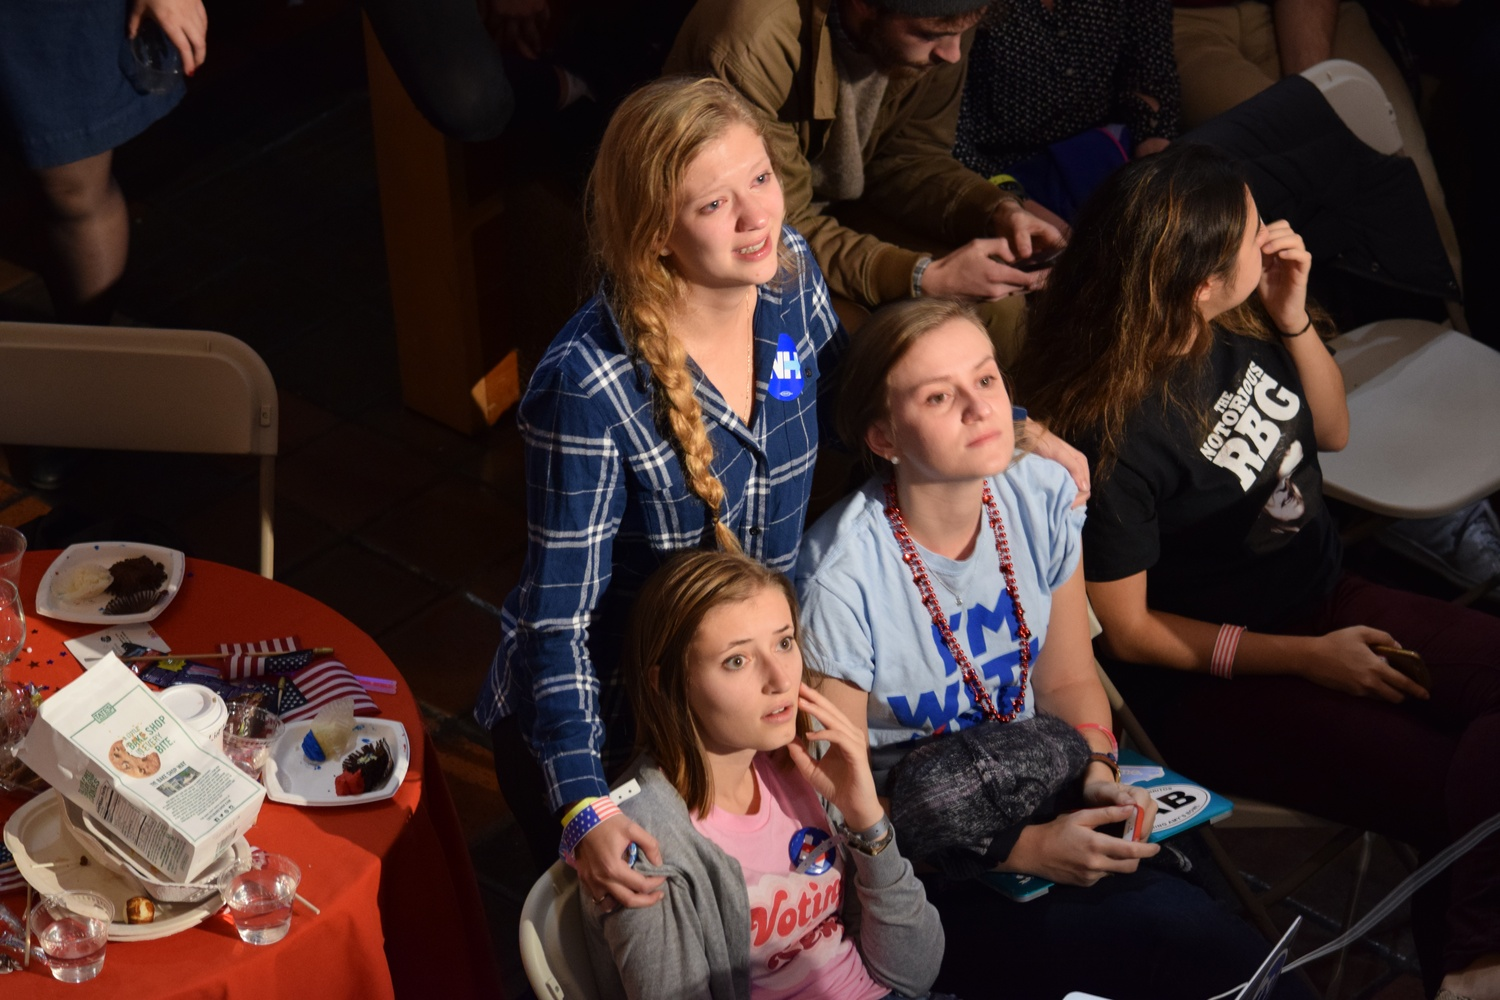 Caroline M. Tervo '18, Sally C. Marsh '18 and Megan K. Mers '17 comfort each other as the election results come in on Tuesday night at the IOP watch party.